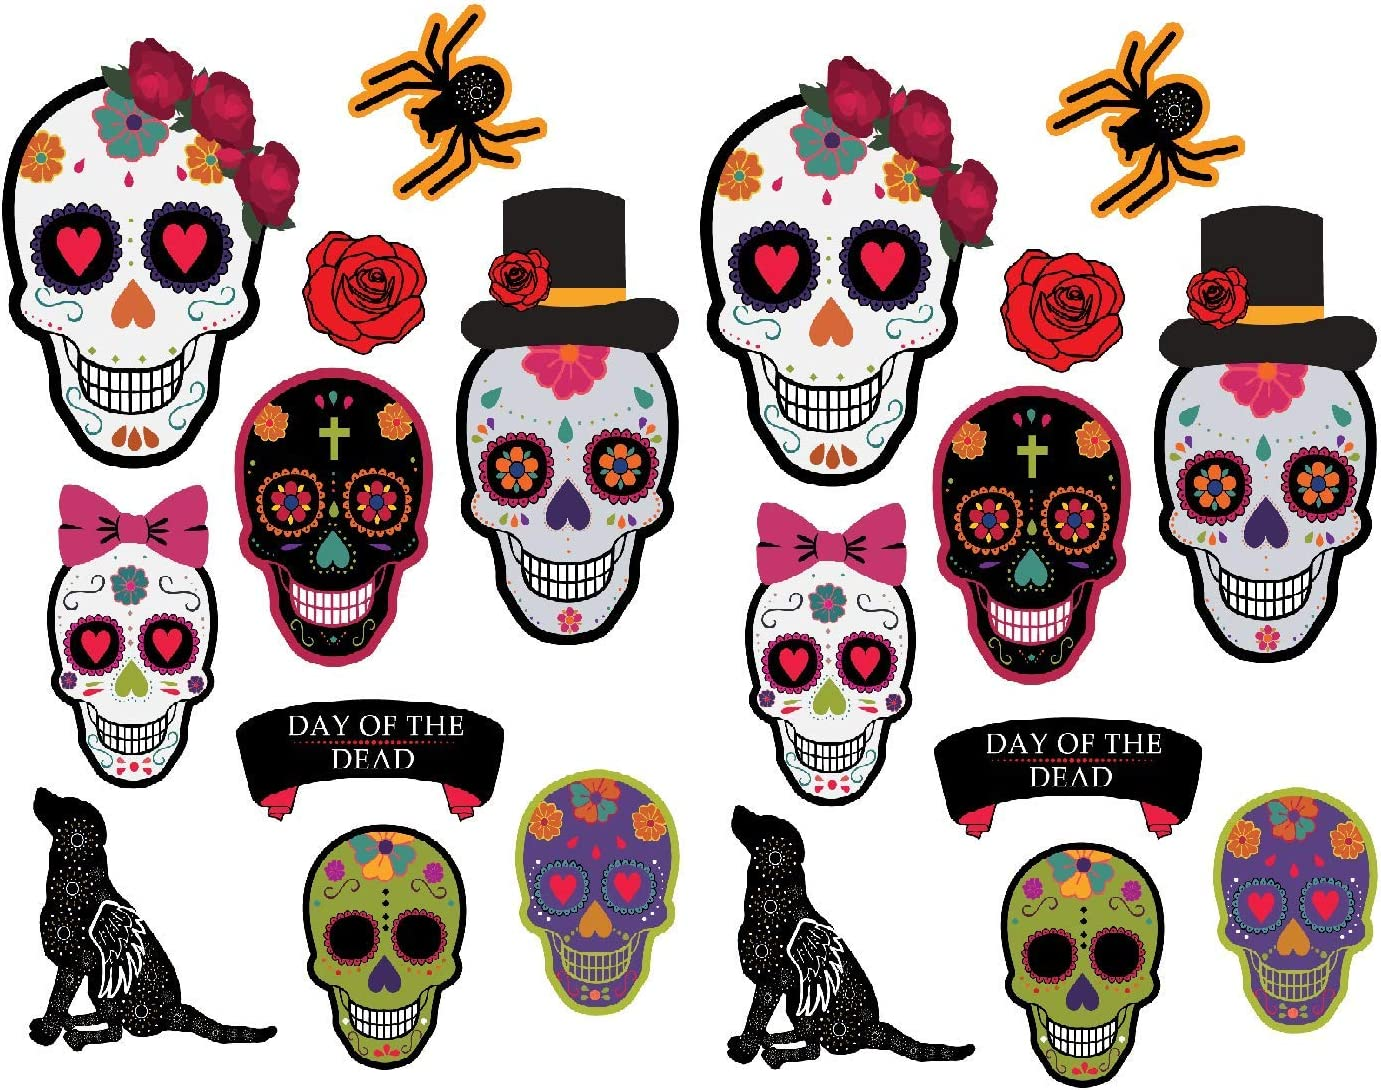 Wakauto 20 Sheets Sugar Skull Day of The Dead Party Napkins Set Napkins Skull Pattern Creative Halloween Disposble Printing Party Supplies Paper Napkins Tissues for Home Bar